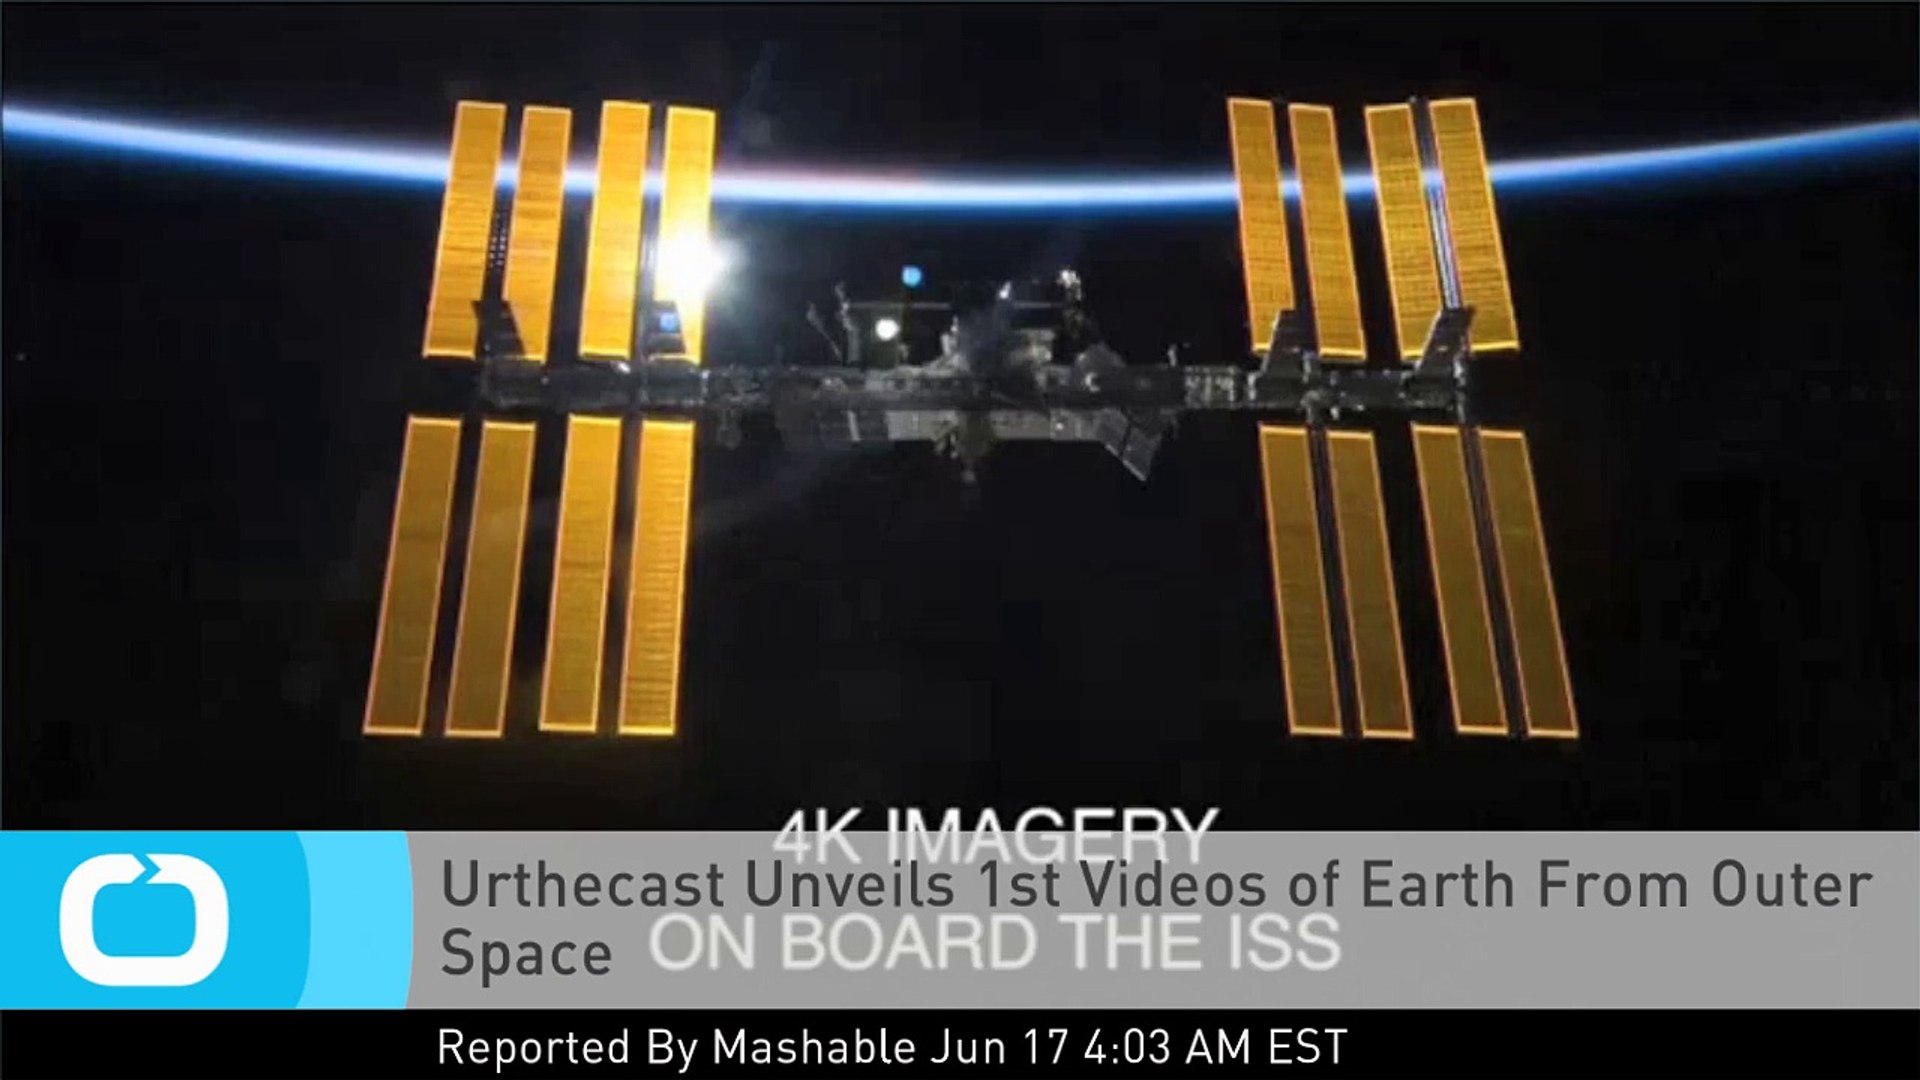 Urthecast Unveils 1st Videos of Earth From Outer Space